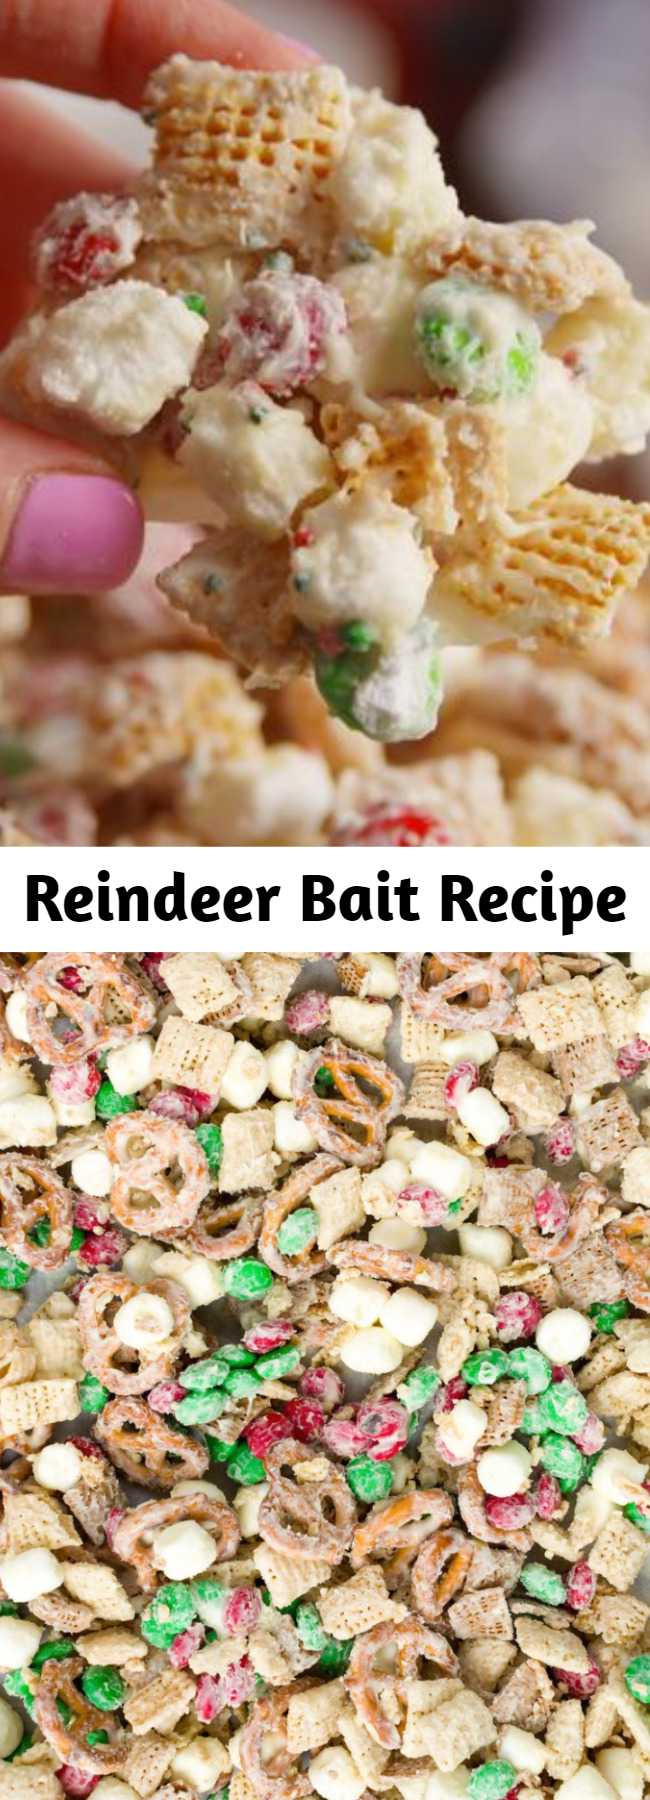 Reindeer Bait Recipe - Don't even think about heading to a Christmas party without a batch of this. #easy #recipe #reindeer #bait #reindeerpoop #chexmix #snacks #mm #kids #christmas #marshmallows #trailmix #pretzels #salty #sweet #nobake #dessert